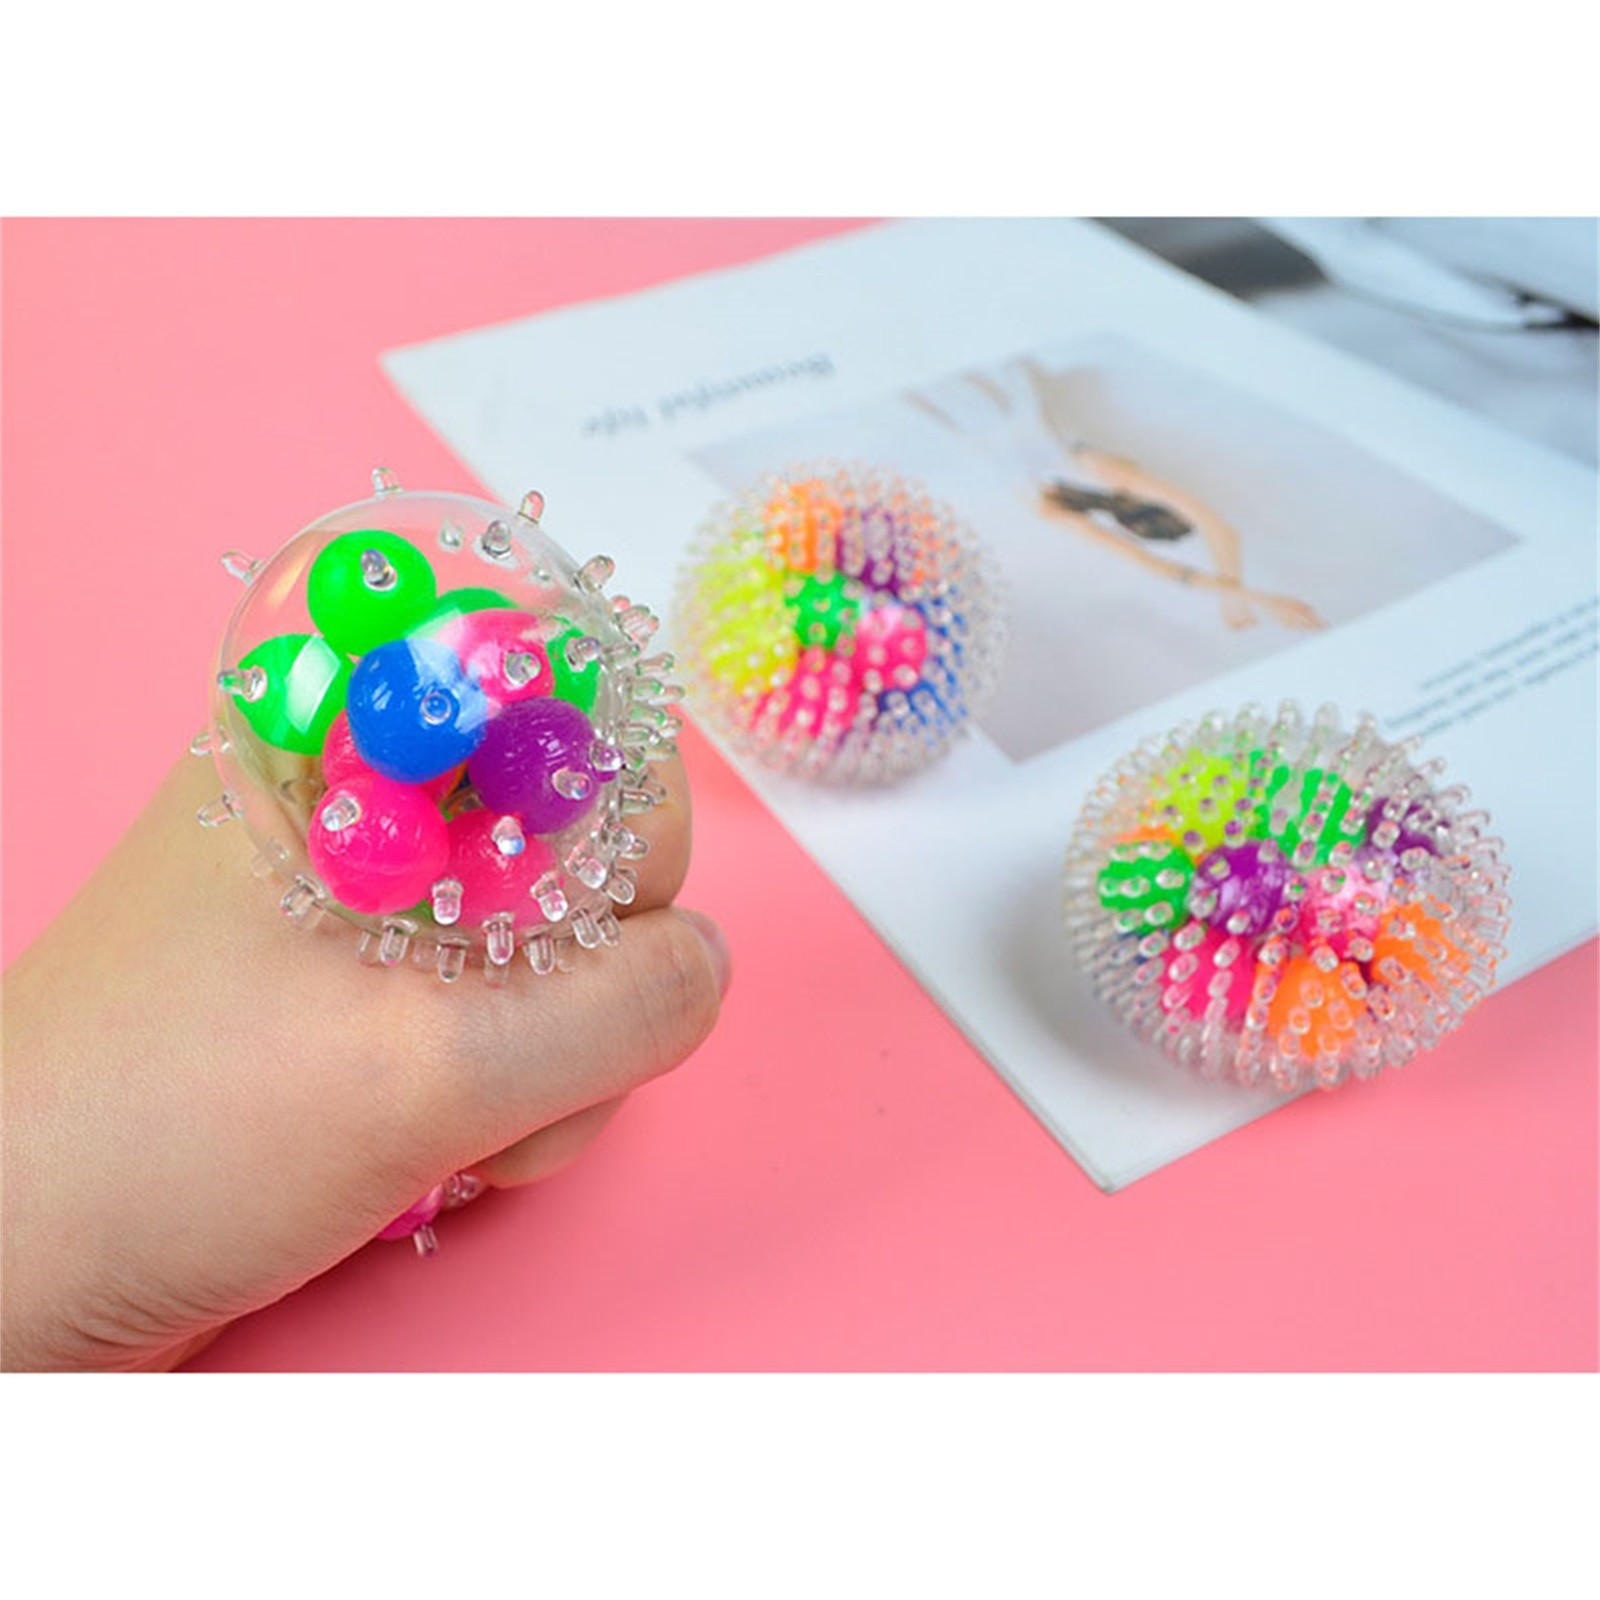 Toy Fidget-Toys Stress-Ball Pressure-Toy Squeezable 30ml Spongy img4